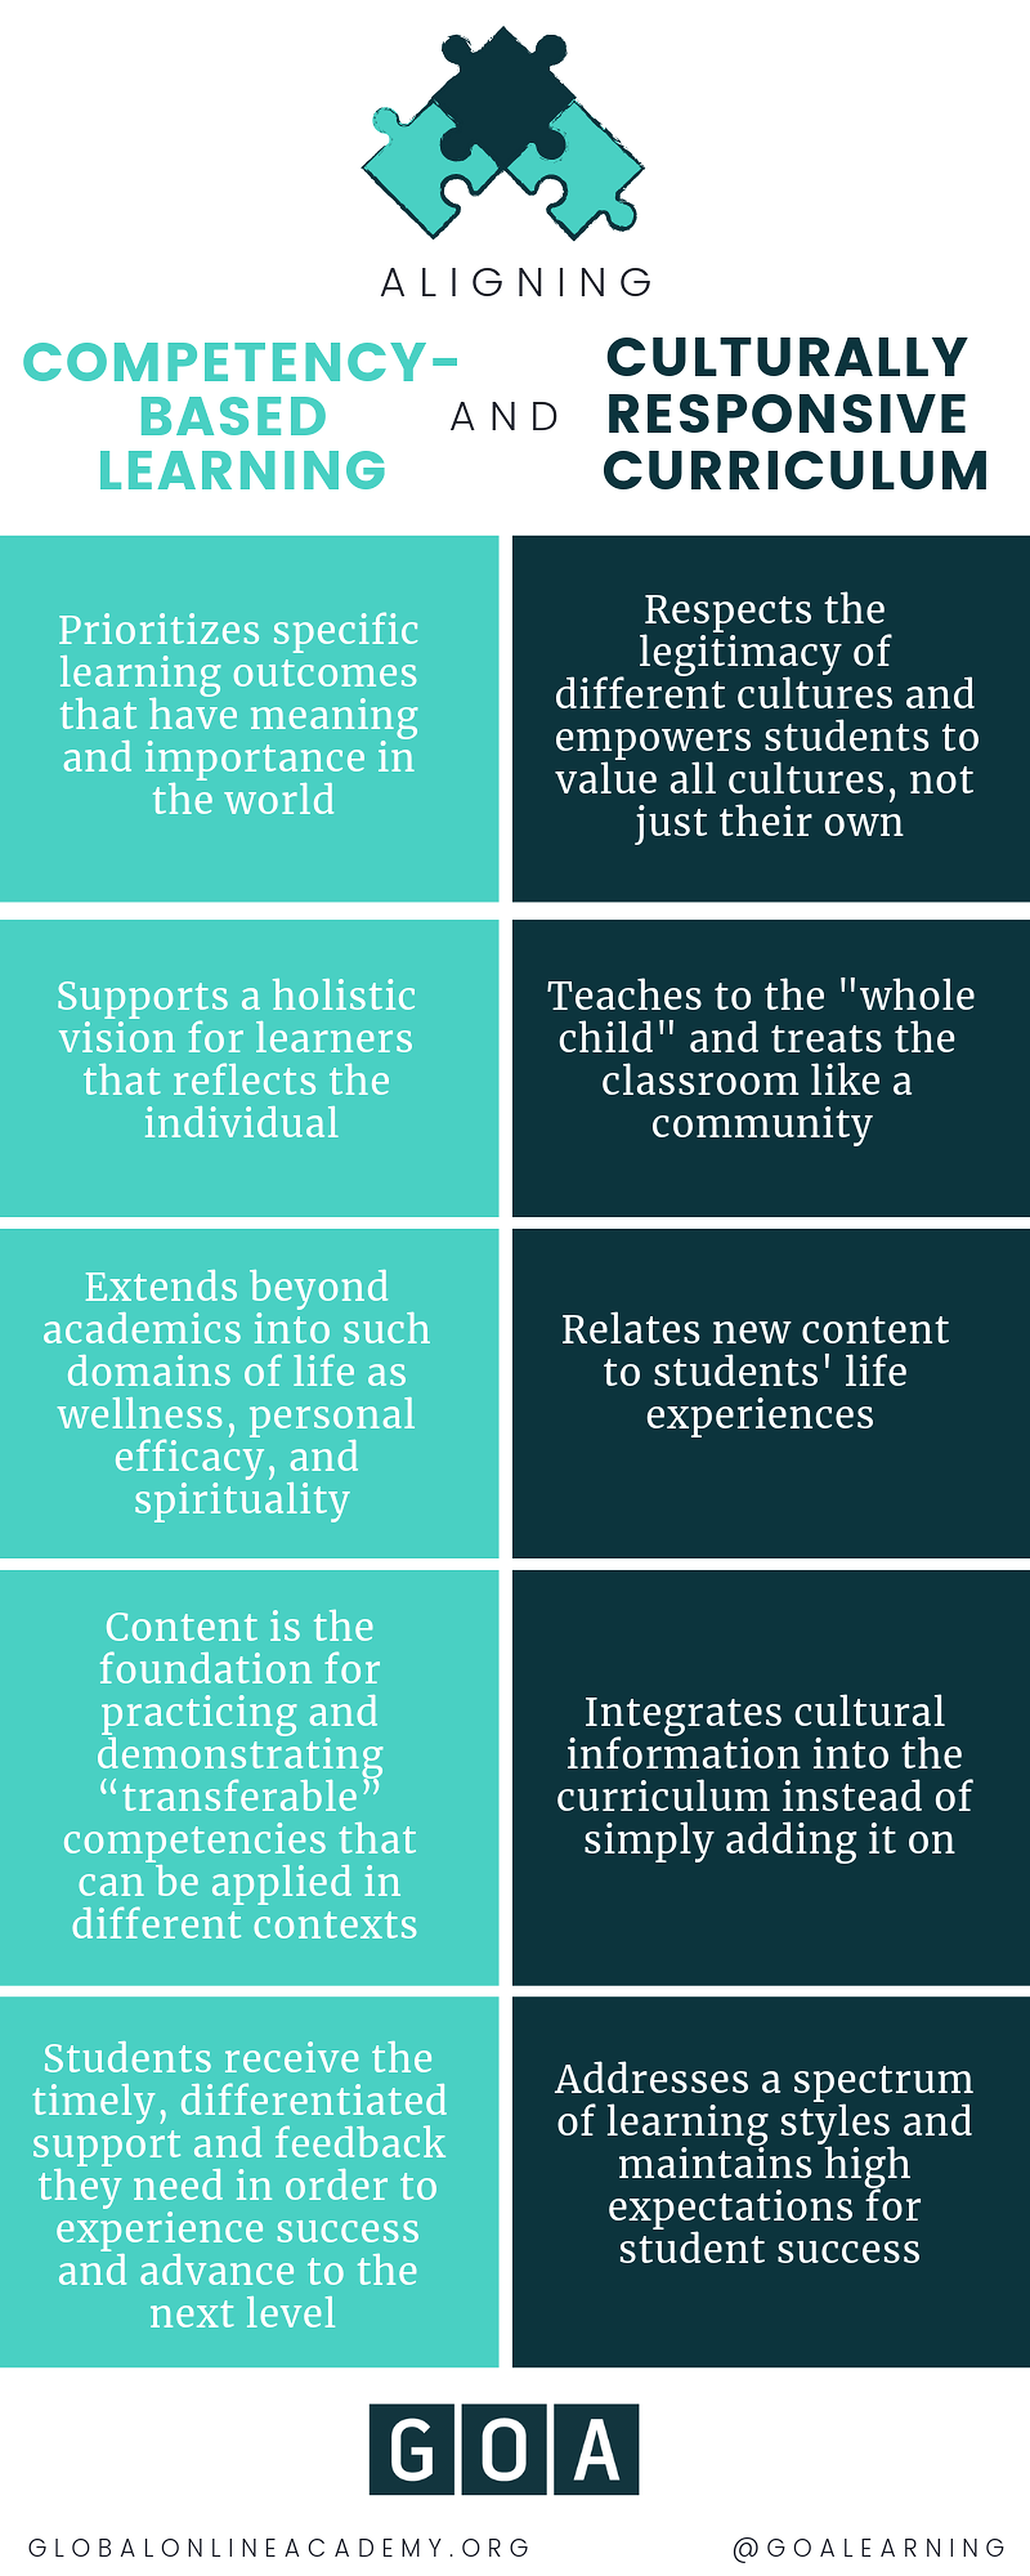 Aligning Competency-Based Education with Culturally Responsive Curriculum